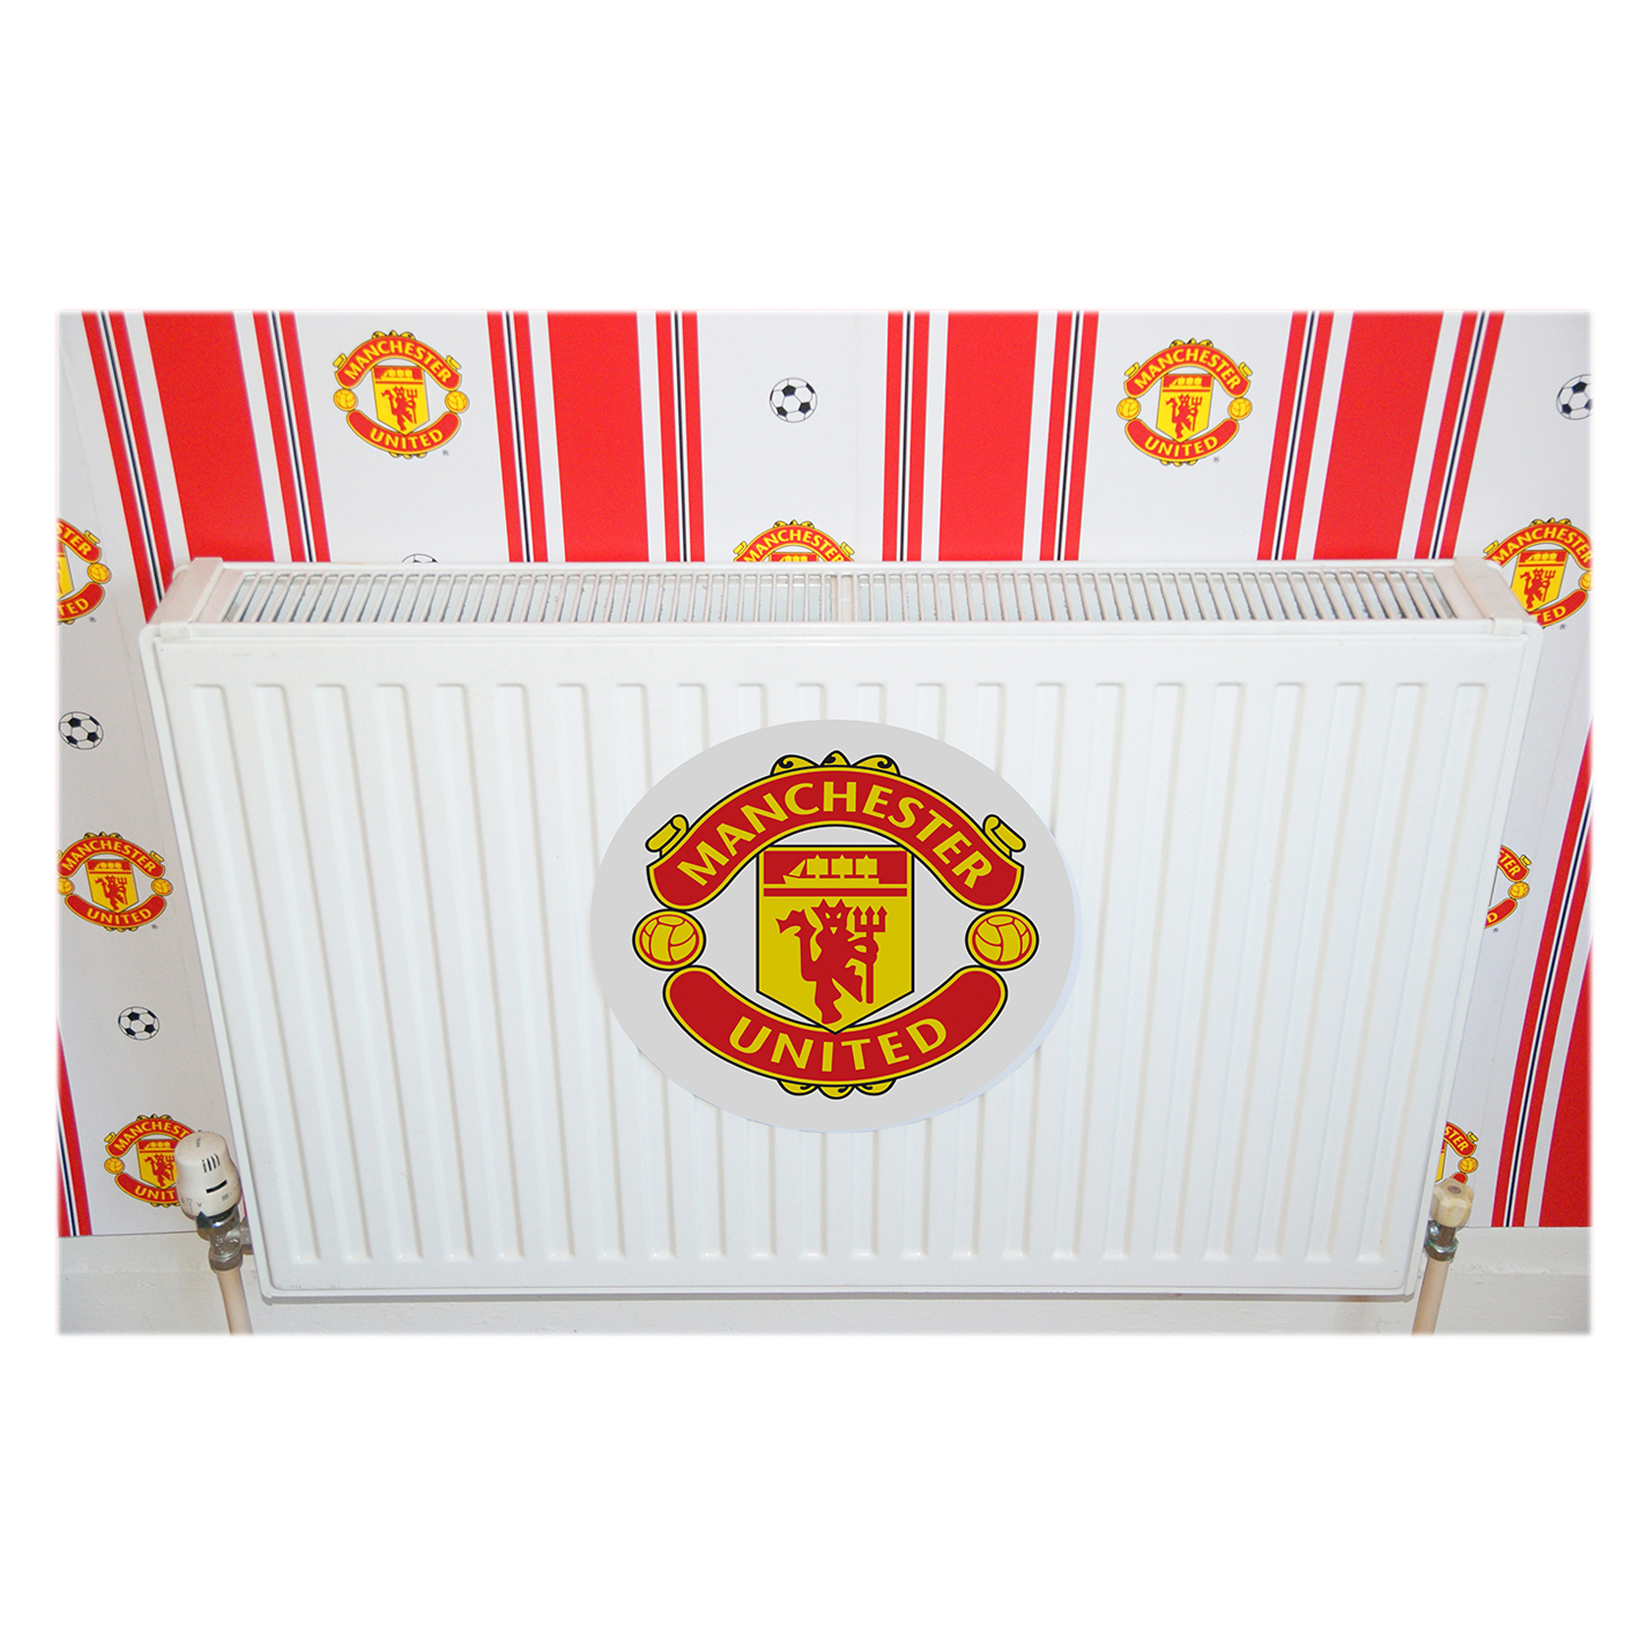 Manchester United Magnetic Crest